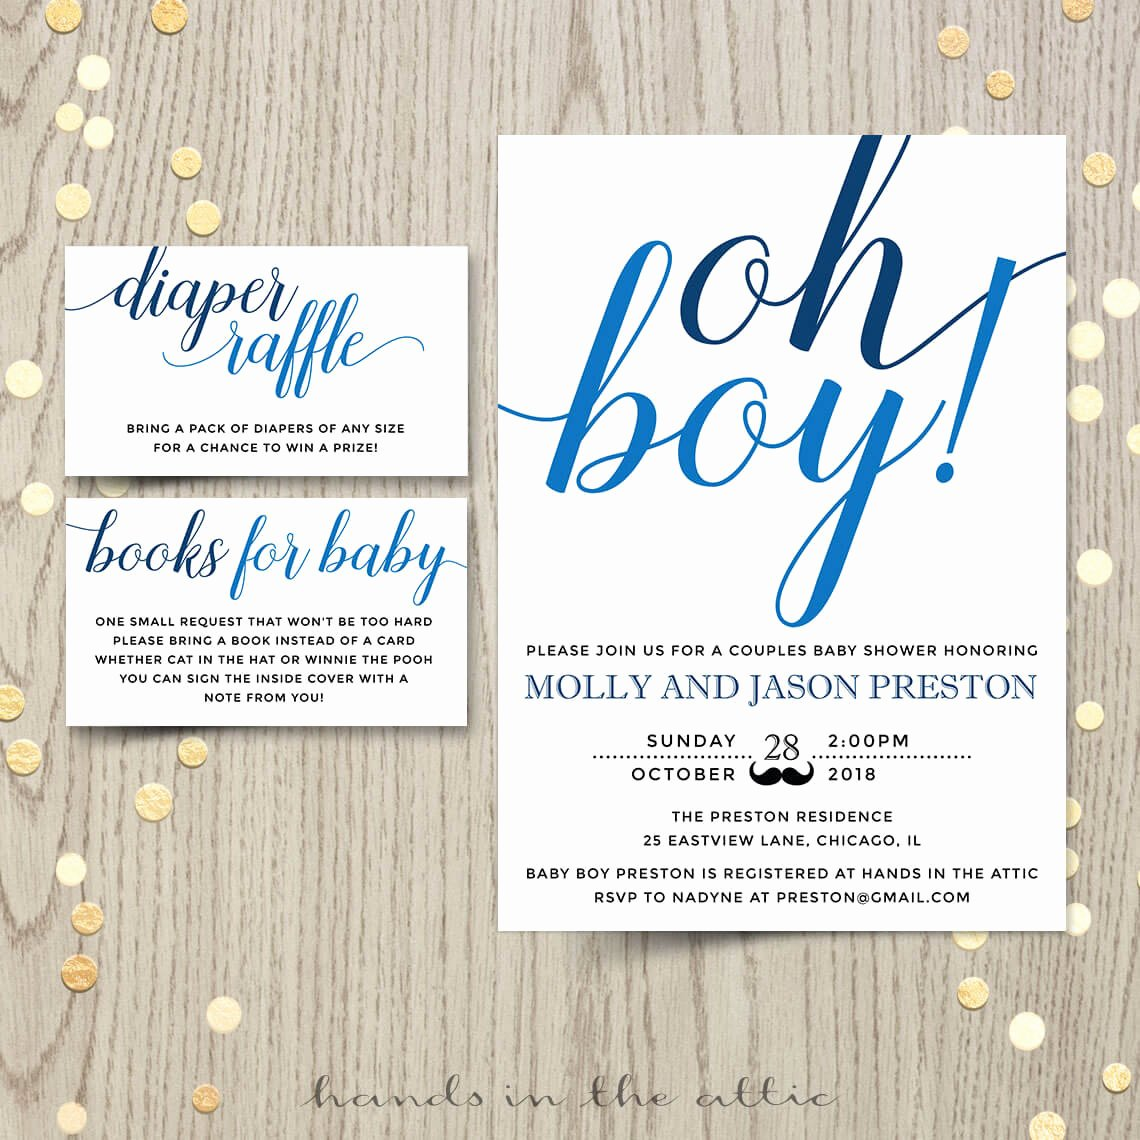 Baby Boy Invitations Free Inspirational Oh Boy Baby Shower Invitation